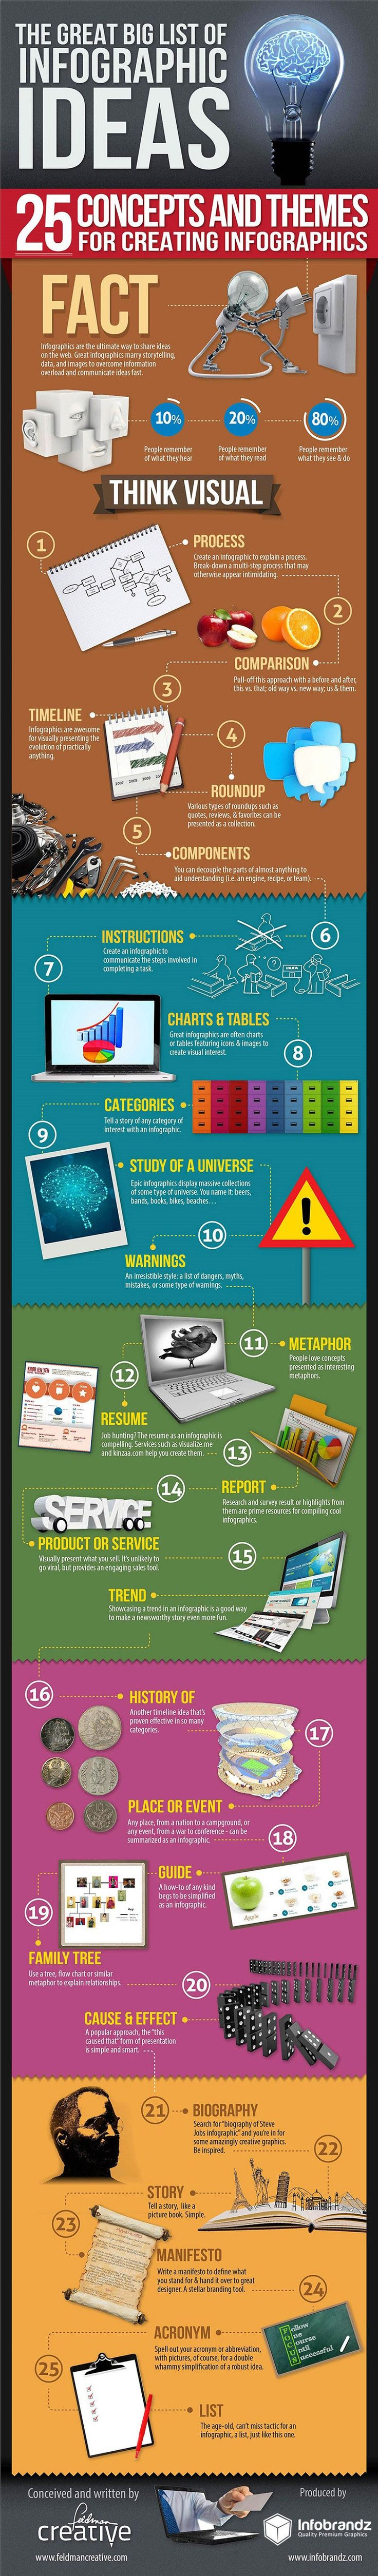 How to Use Pinterest to Supercharge Your Social Media Presence #Pinterest #Infographics